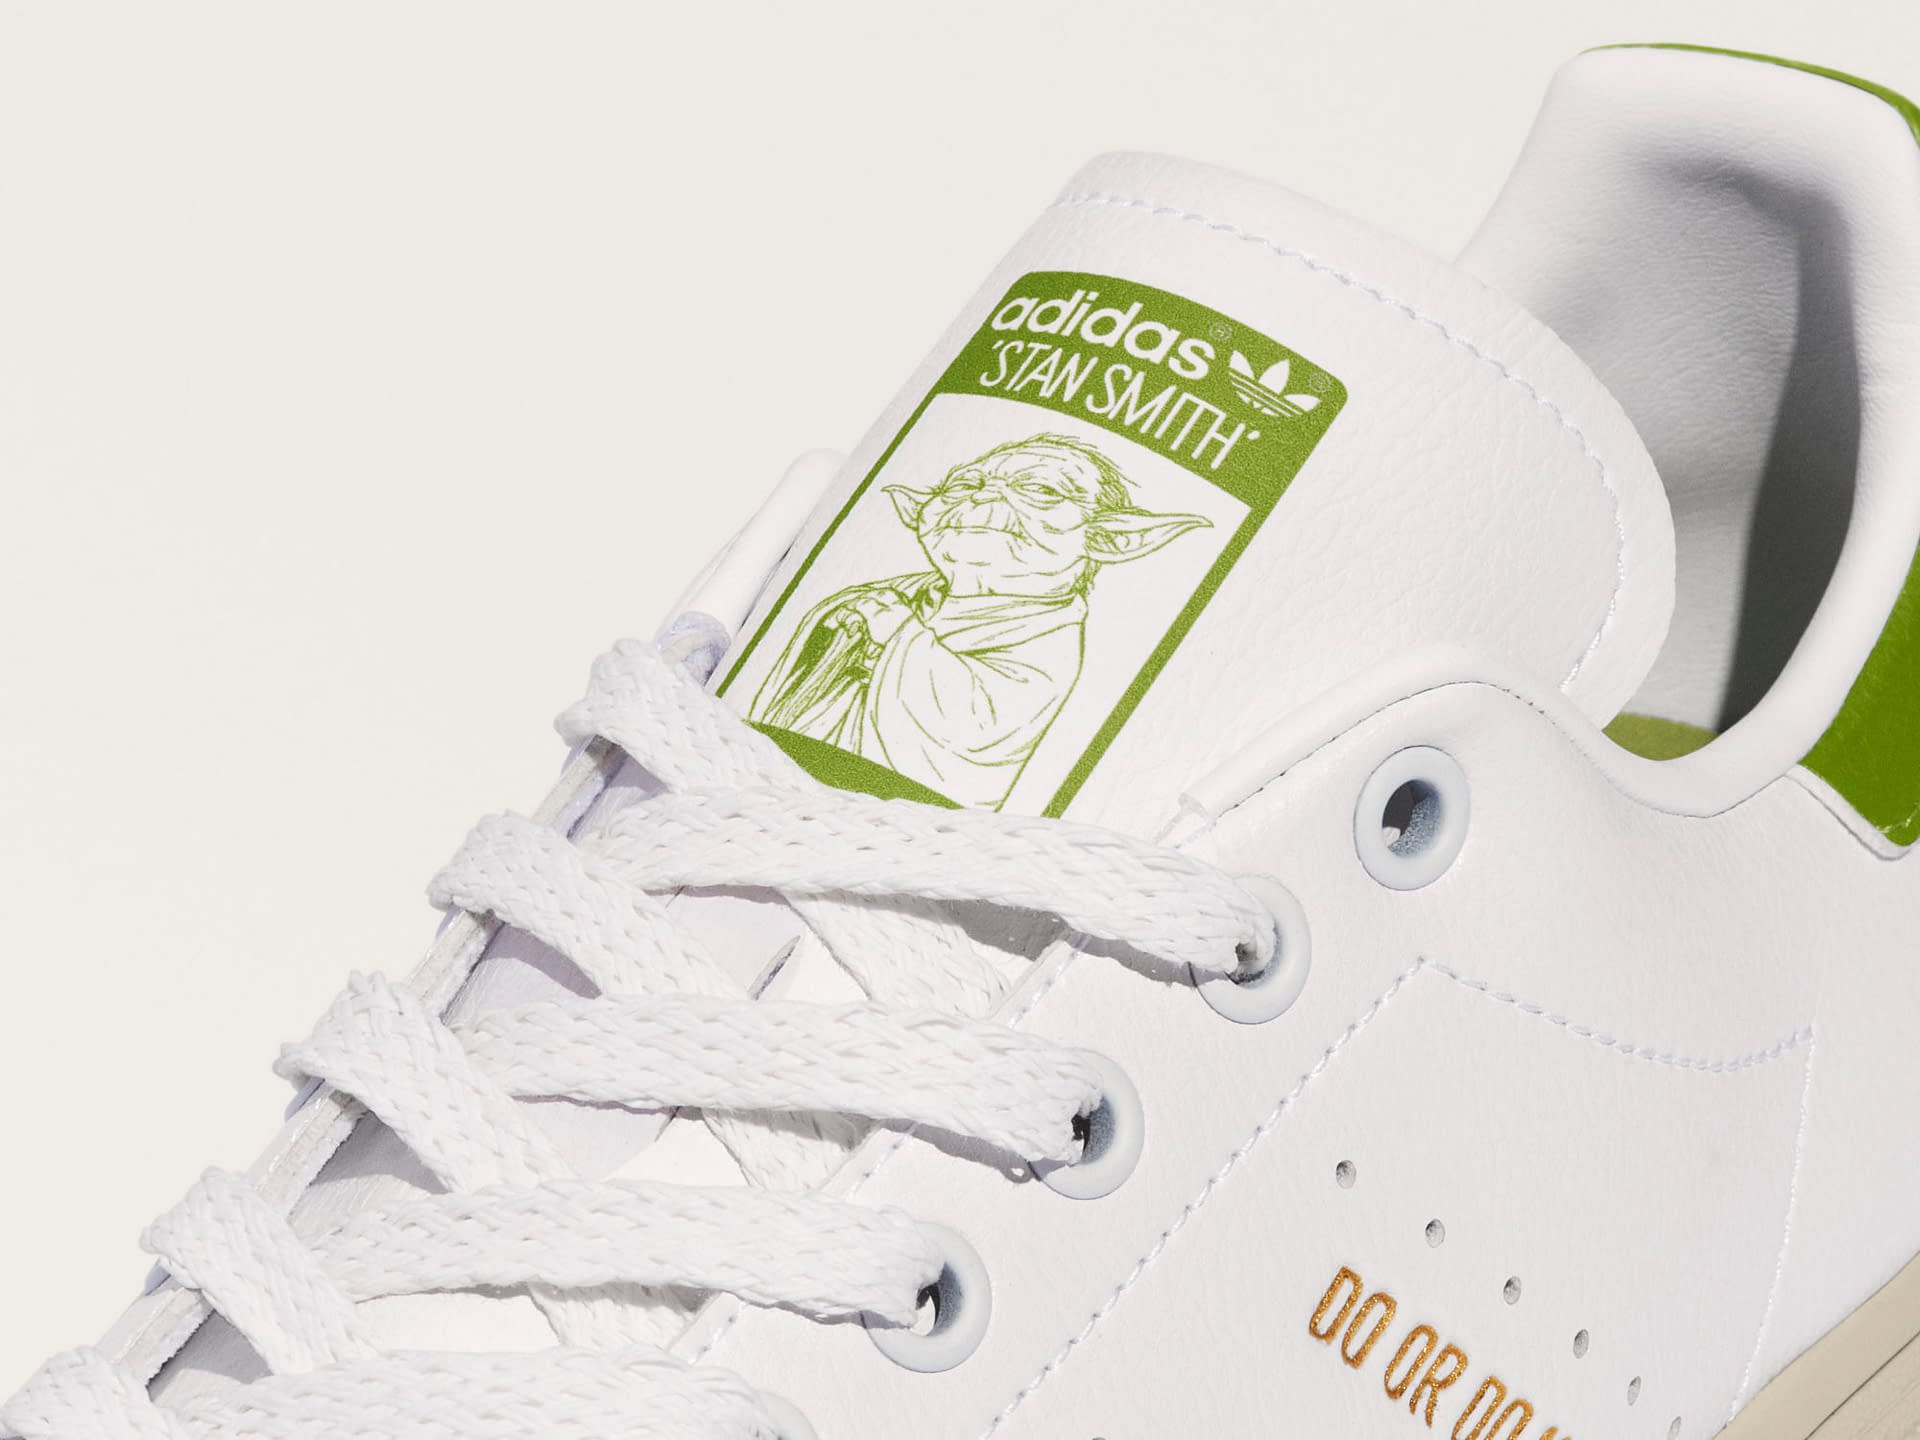 Star Wars Fans Can Add New Stan Smith Yoda Adidas To Their Collection